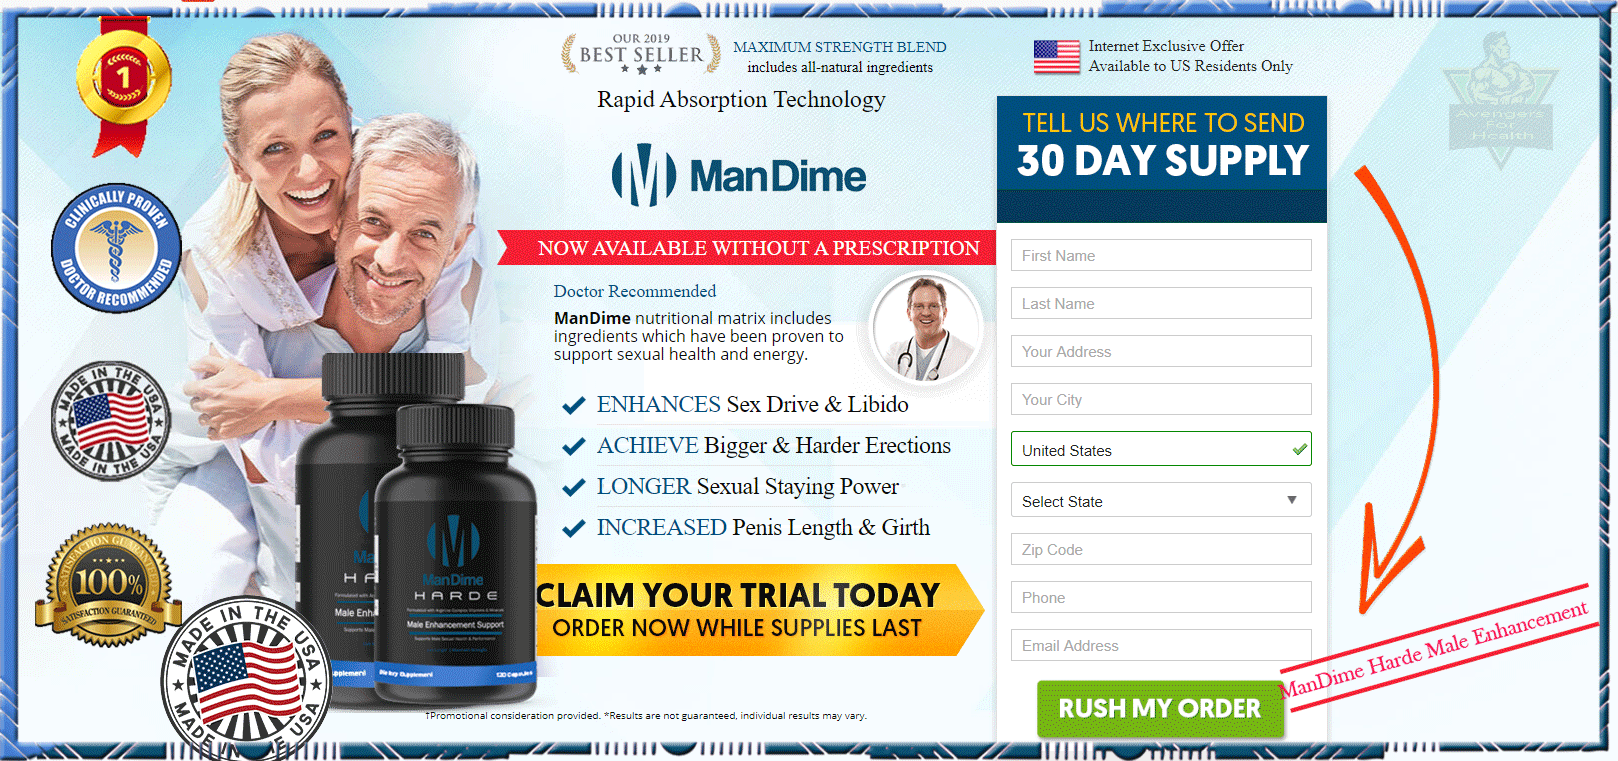 ManDime-Harde-Male-Enhancement-trial5